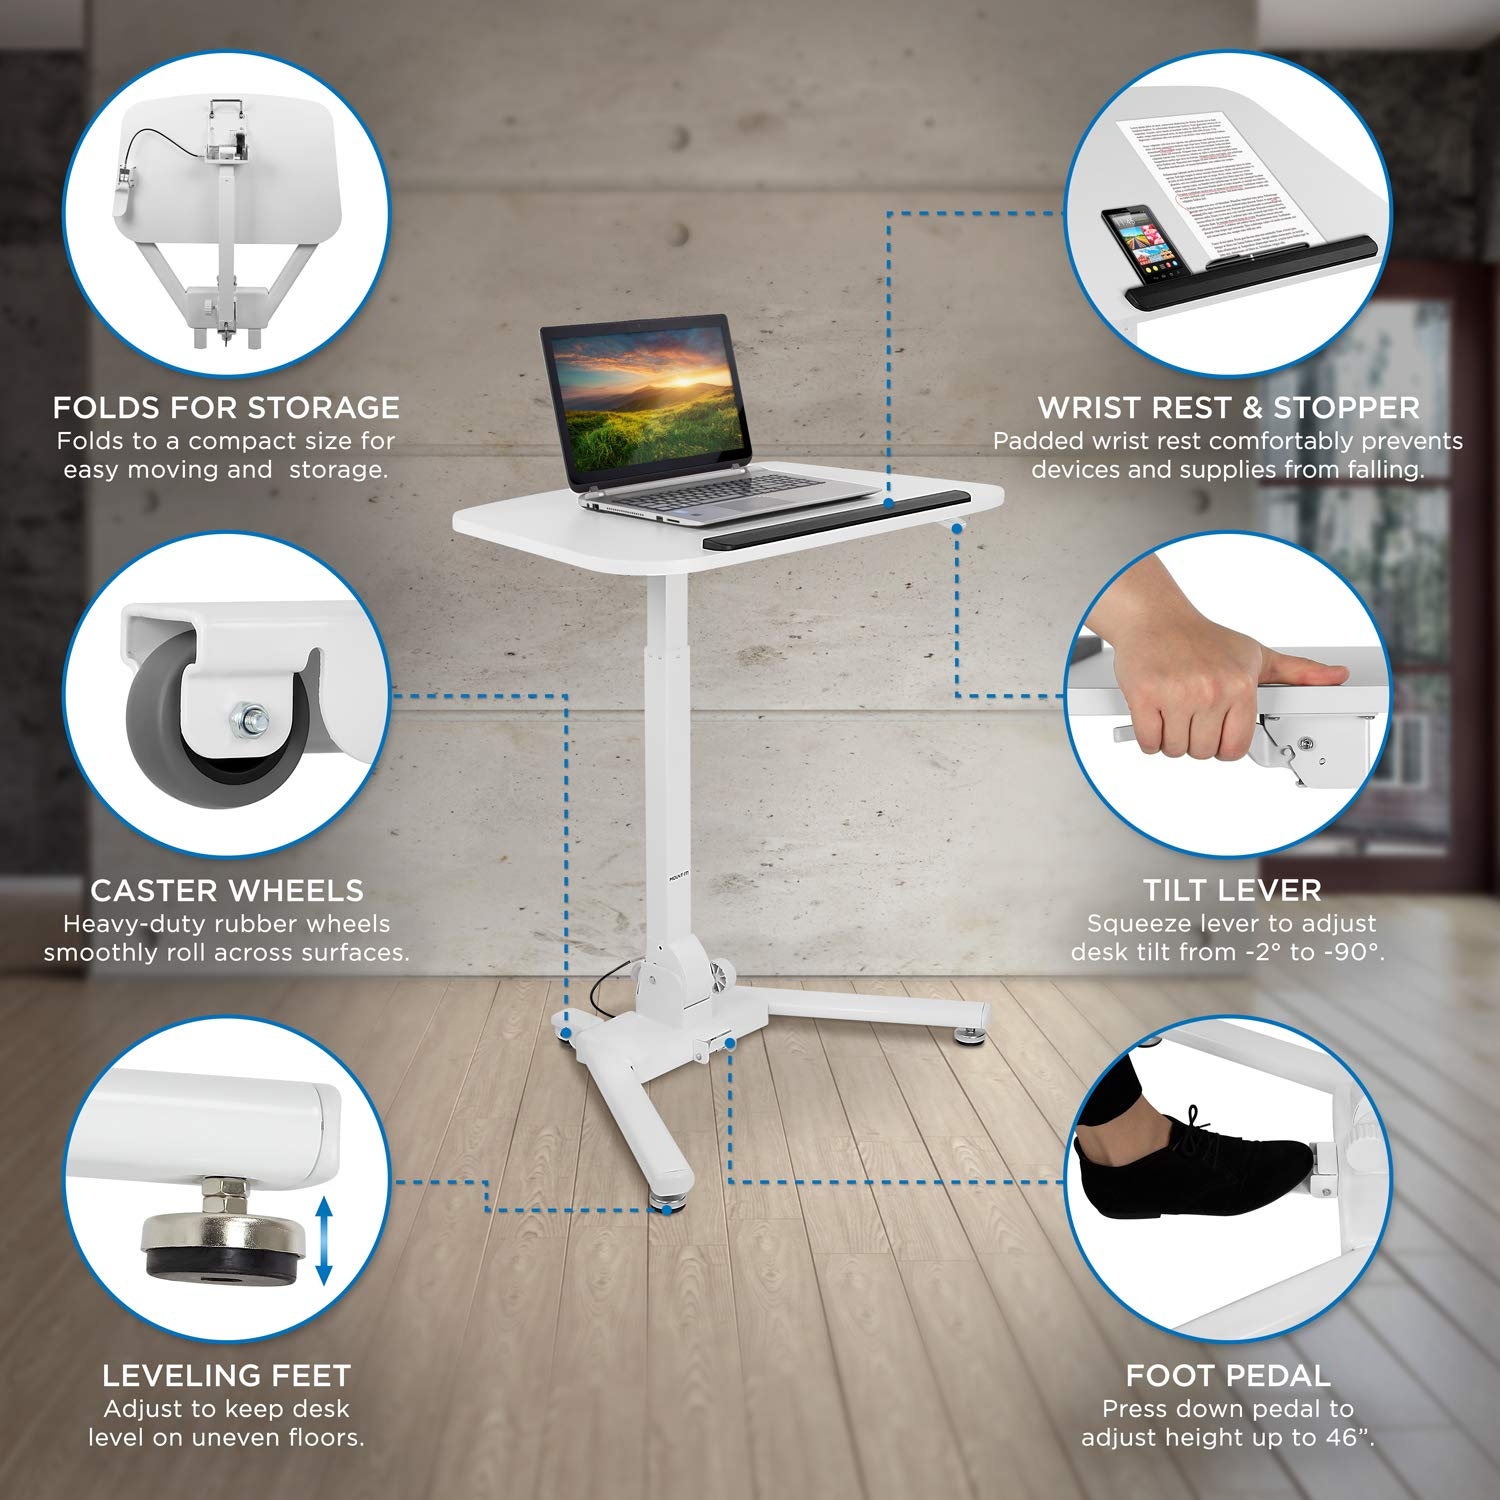 Mount-It! Standing Folding Laptop Cart, Sit Stand Mobile Desk with Height Adjustable 31.1'' x 20.5'' Platform, Supports up to 17.6 lbs, White (MI-7949) by Mount-It! (Image #3)